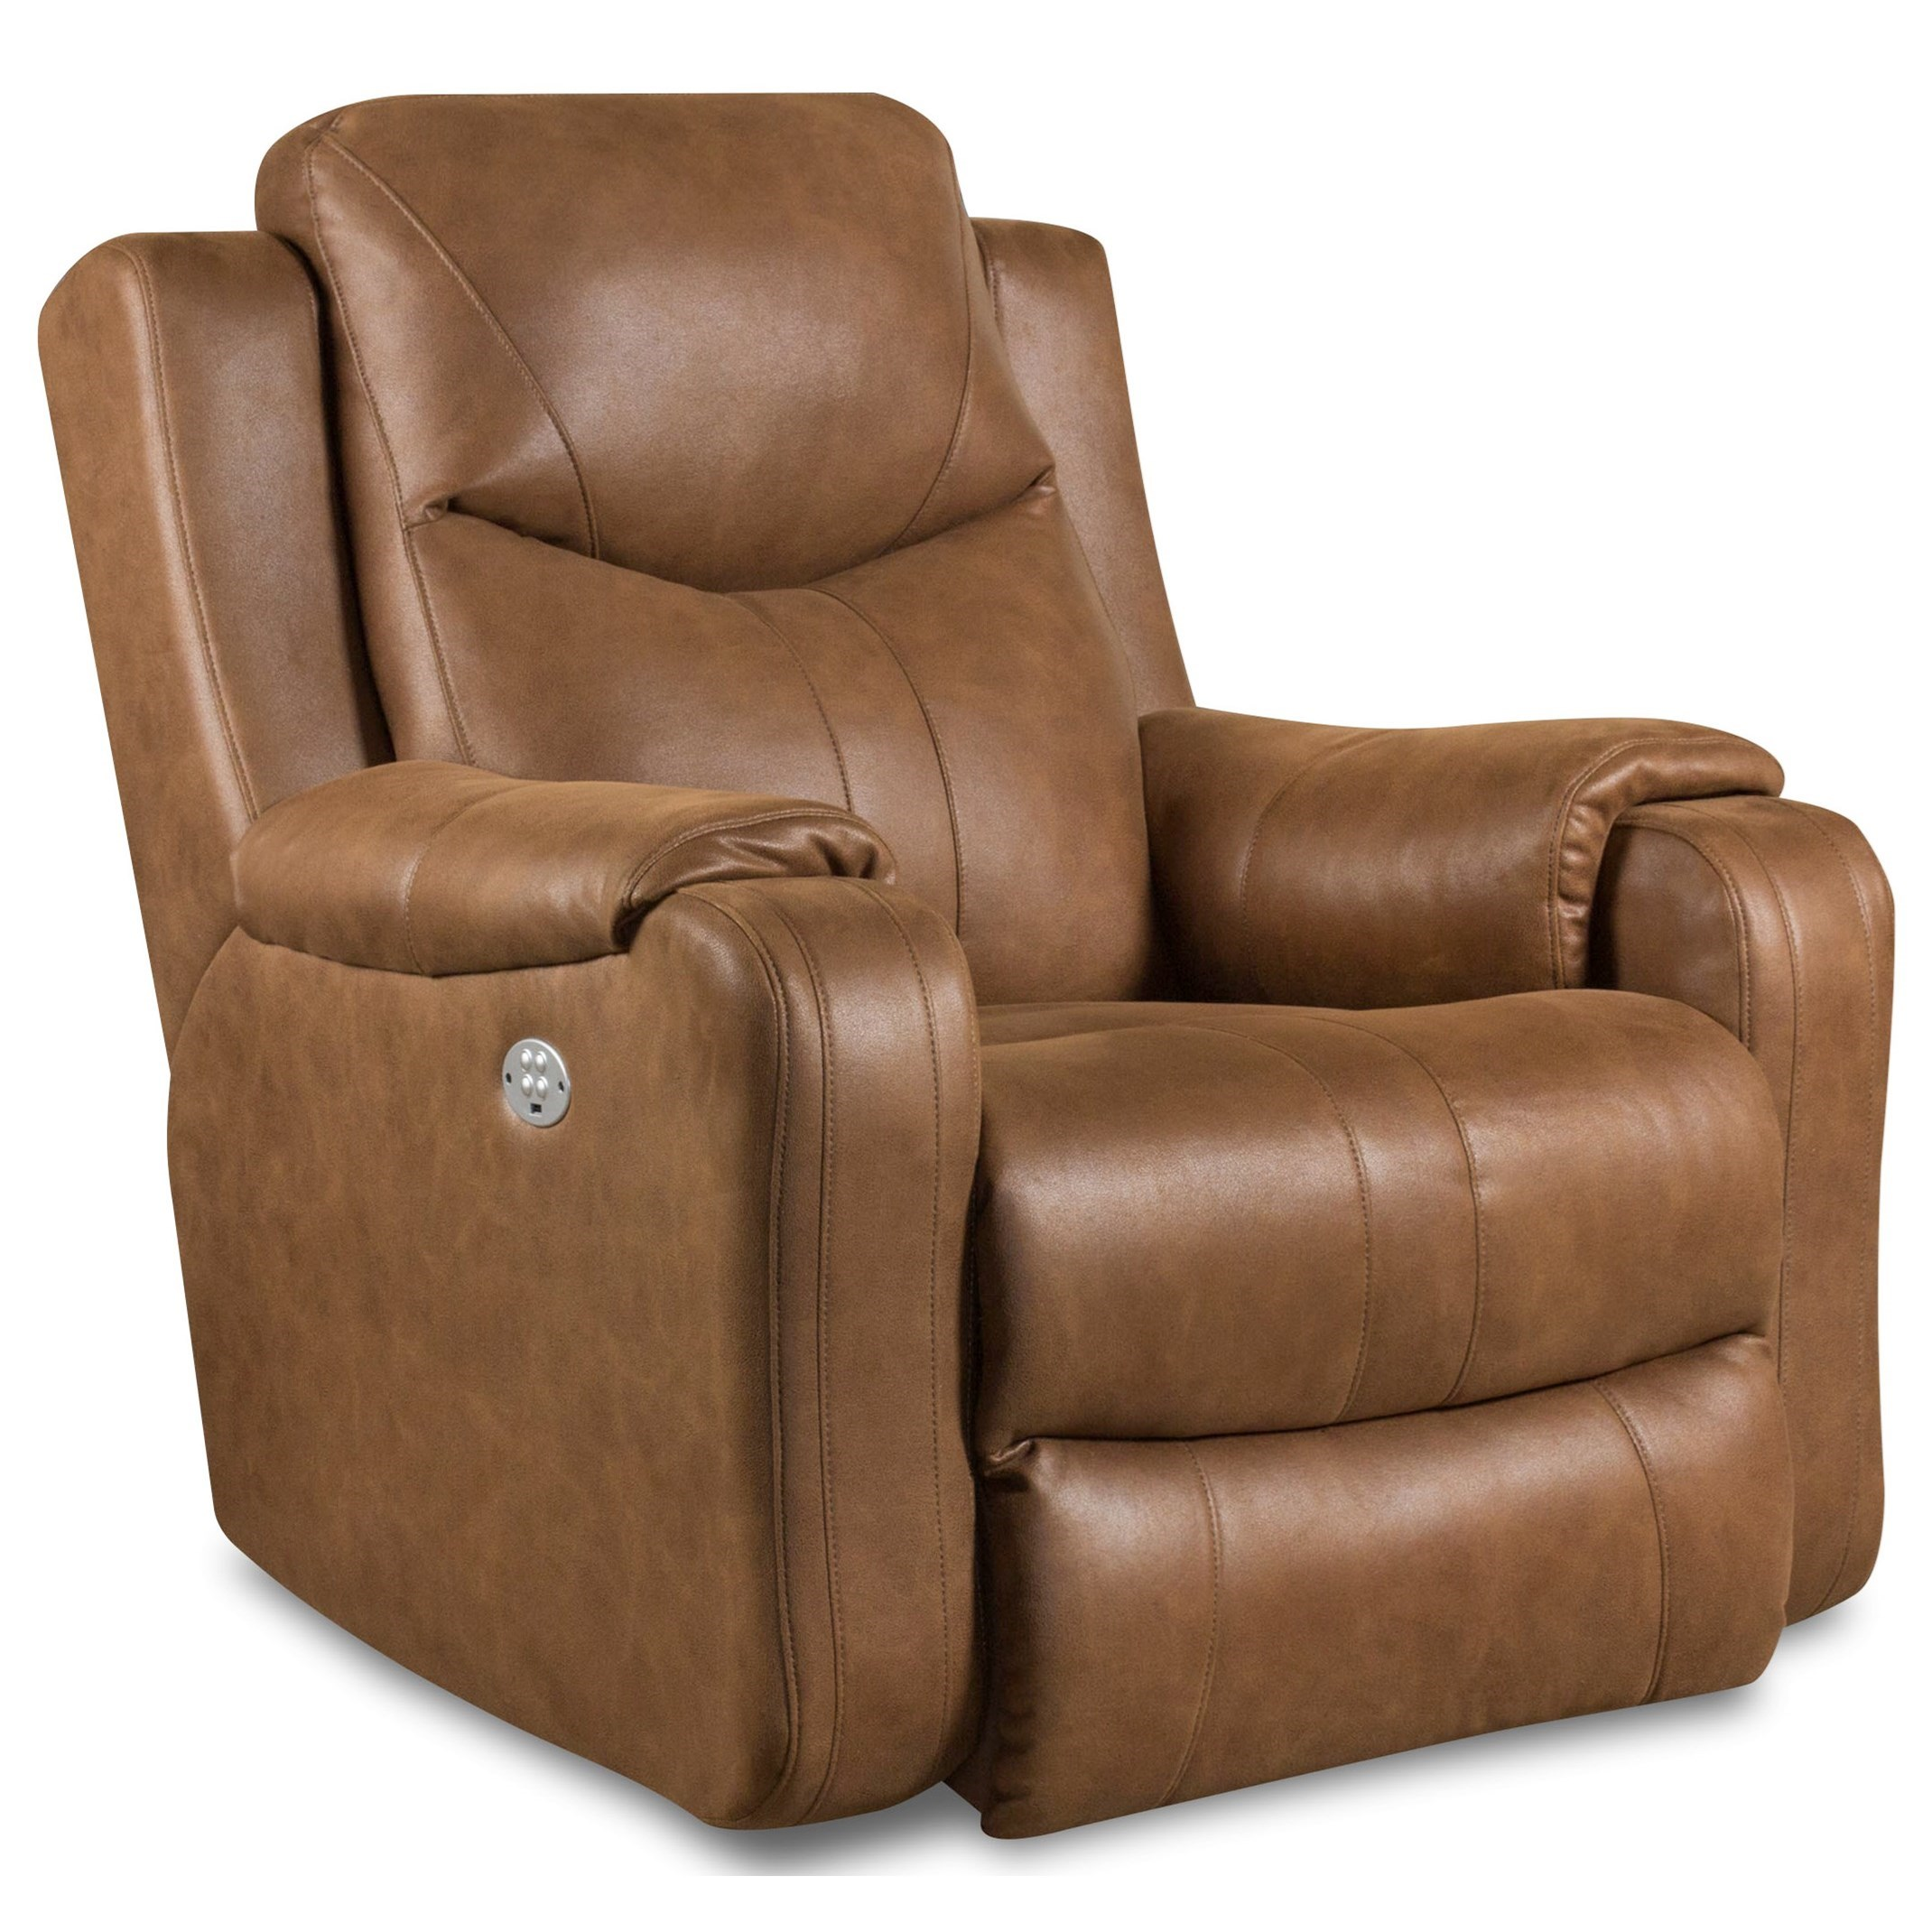 Marvel Power Rocker Recliner by Southern Motion at Bullard Furniture